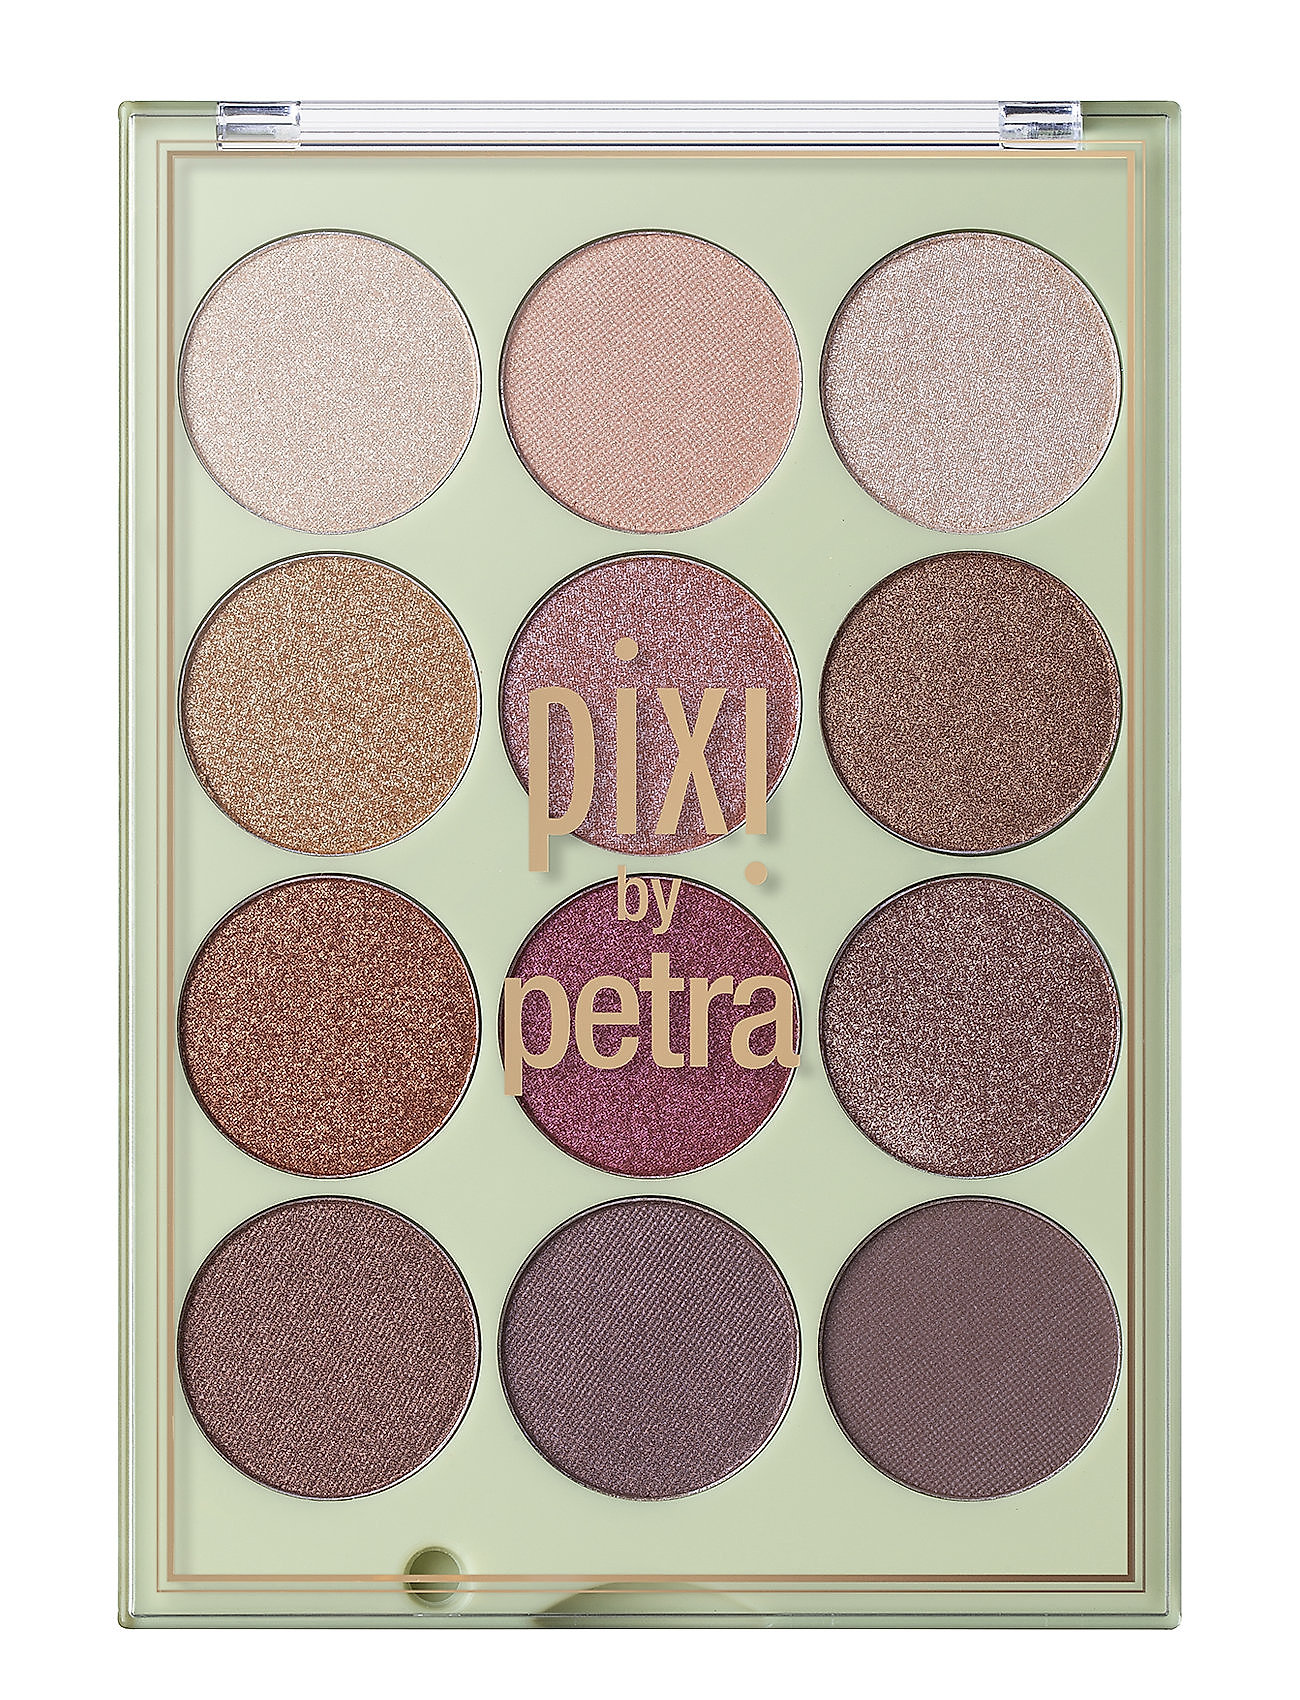 Pixi Eye Reflections Shadow Palette - MIXED METALS